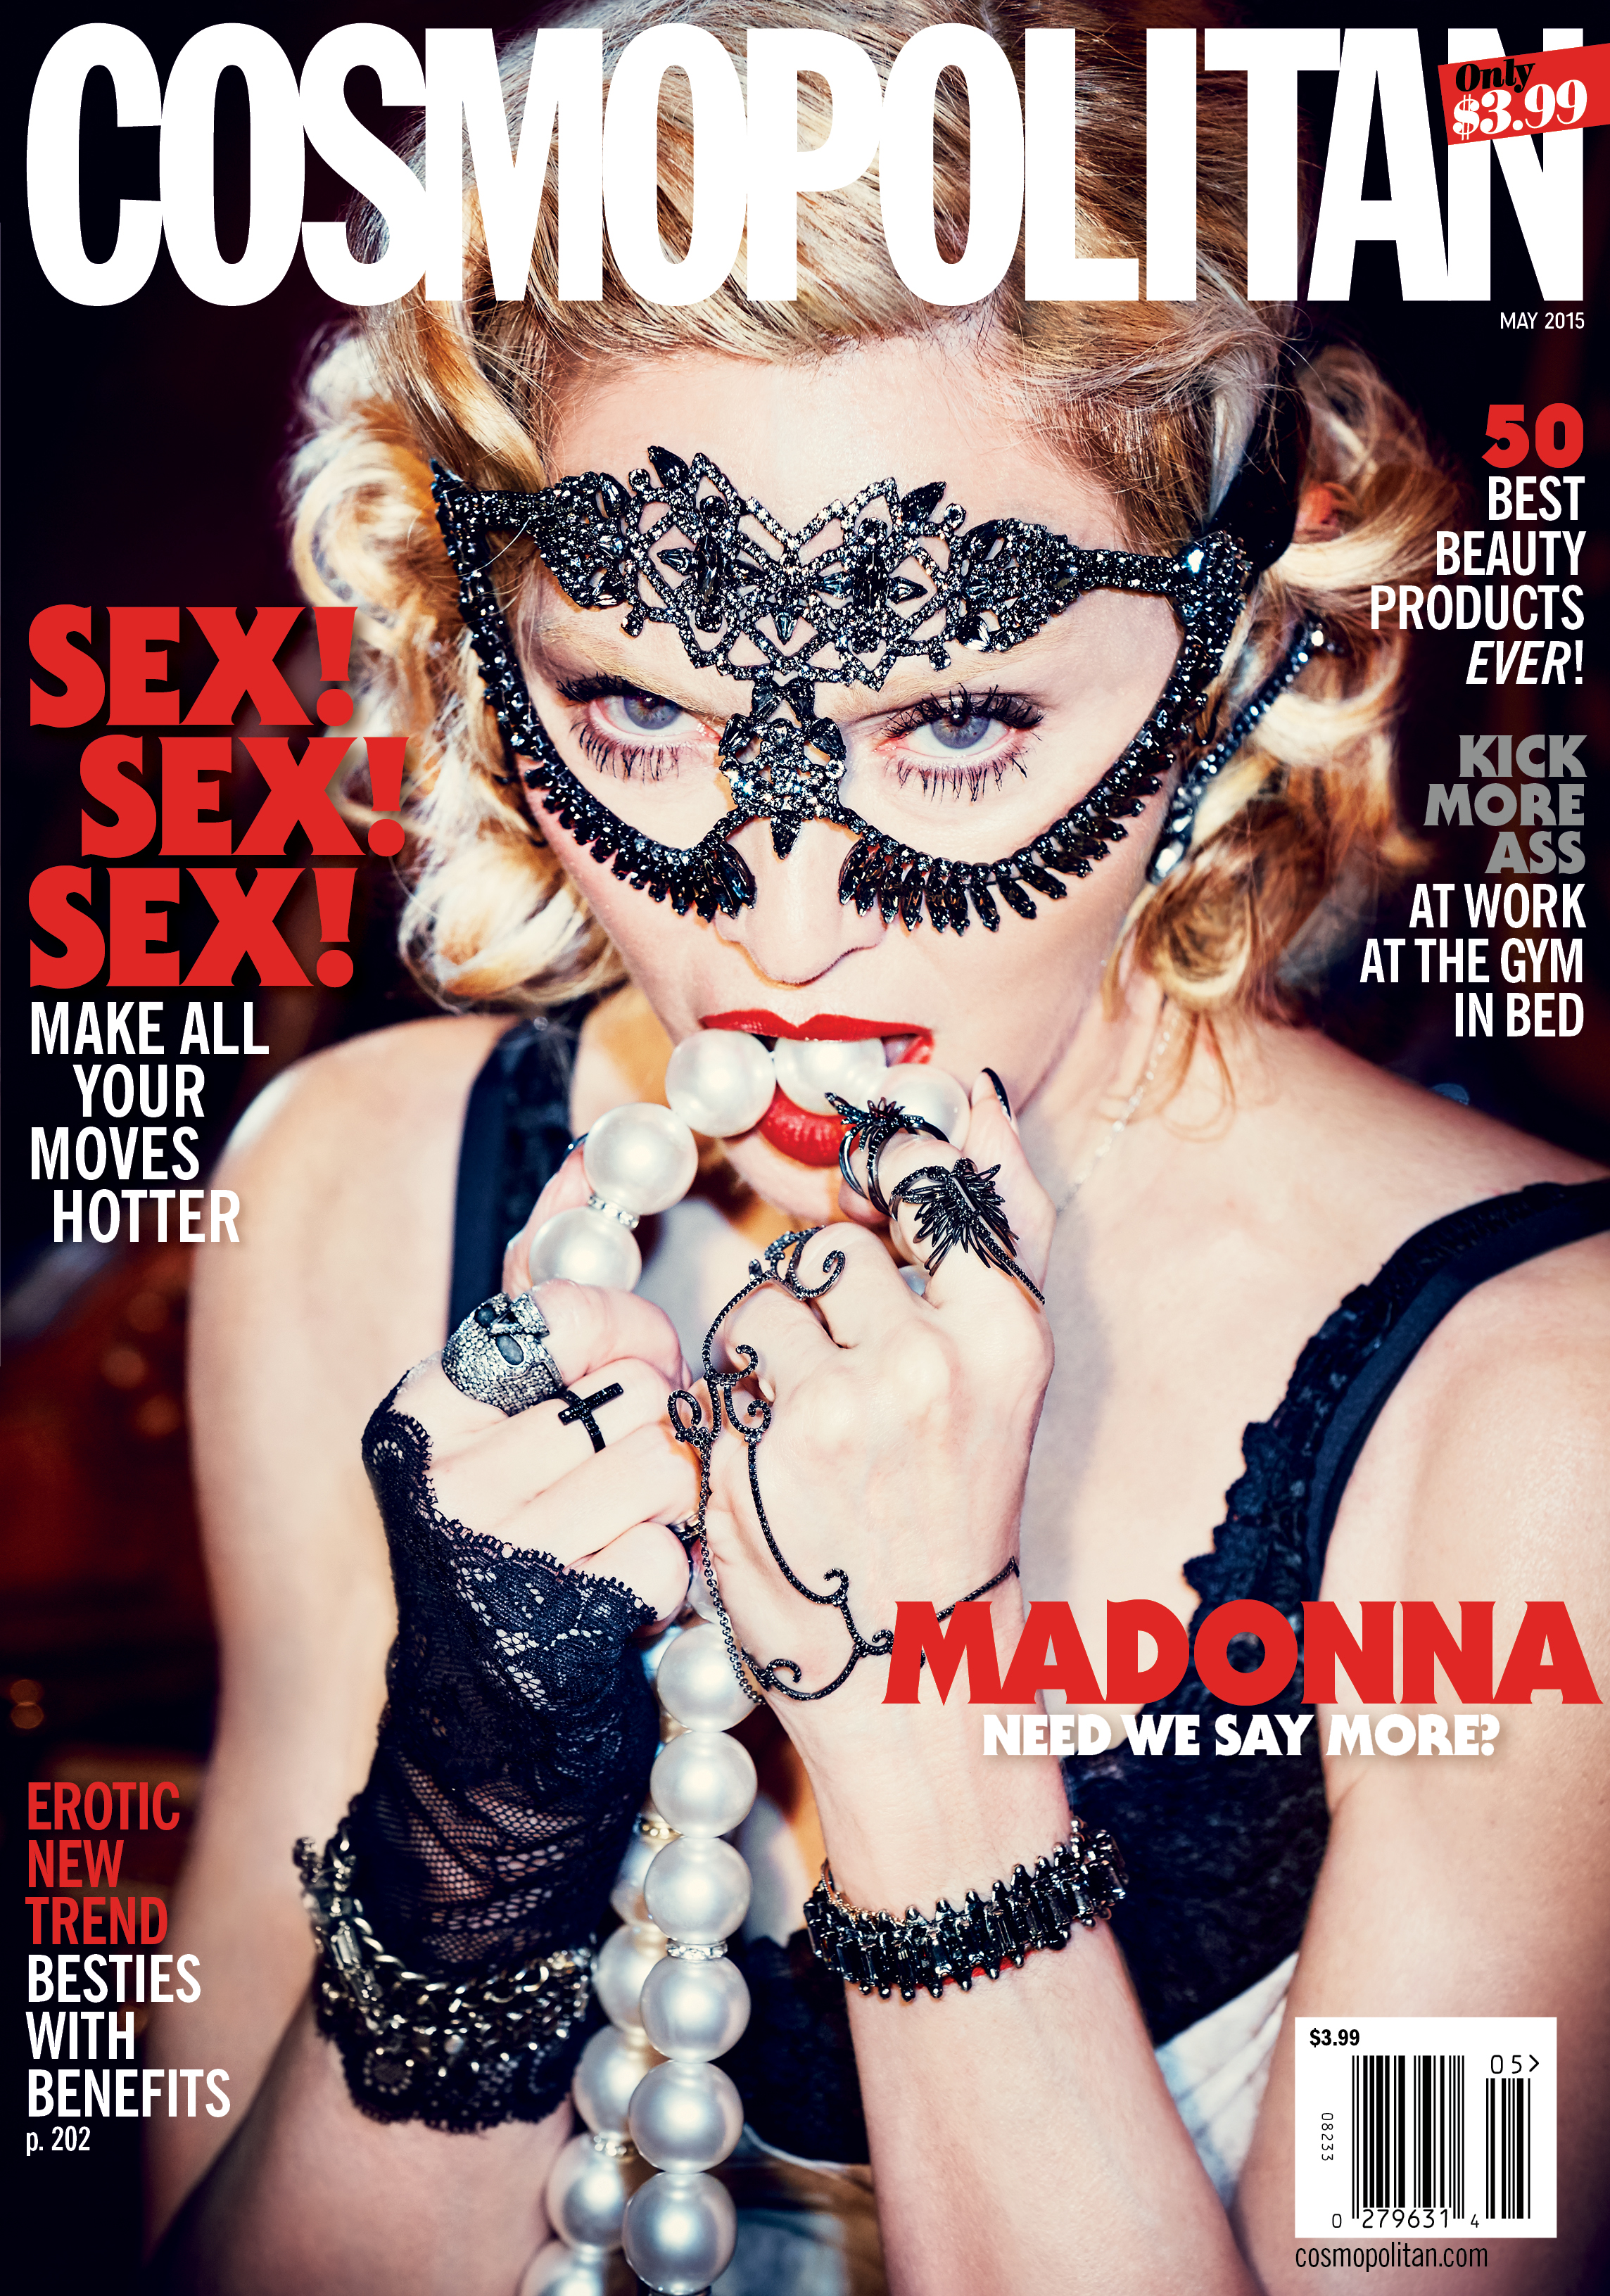 Cosmo-May-15-Cover-1.jpg